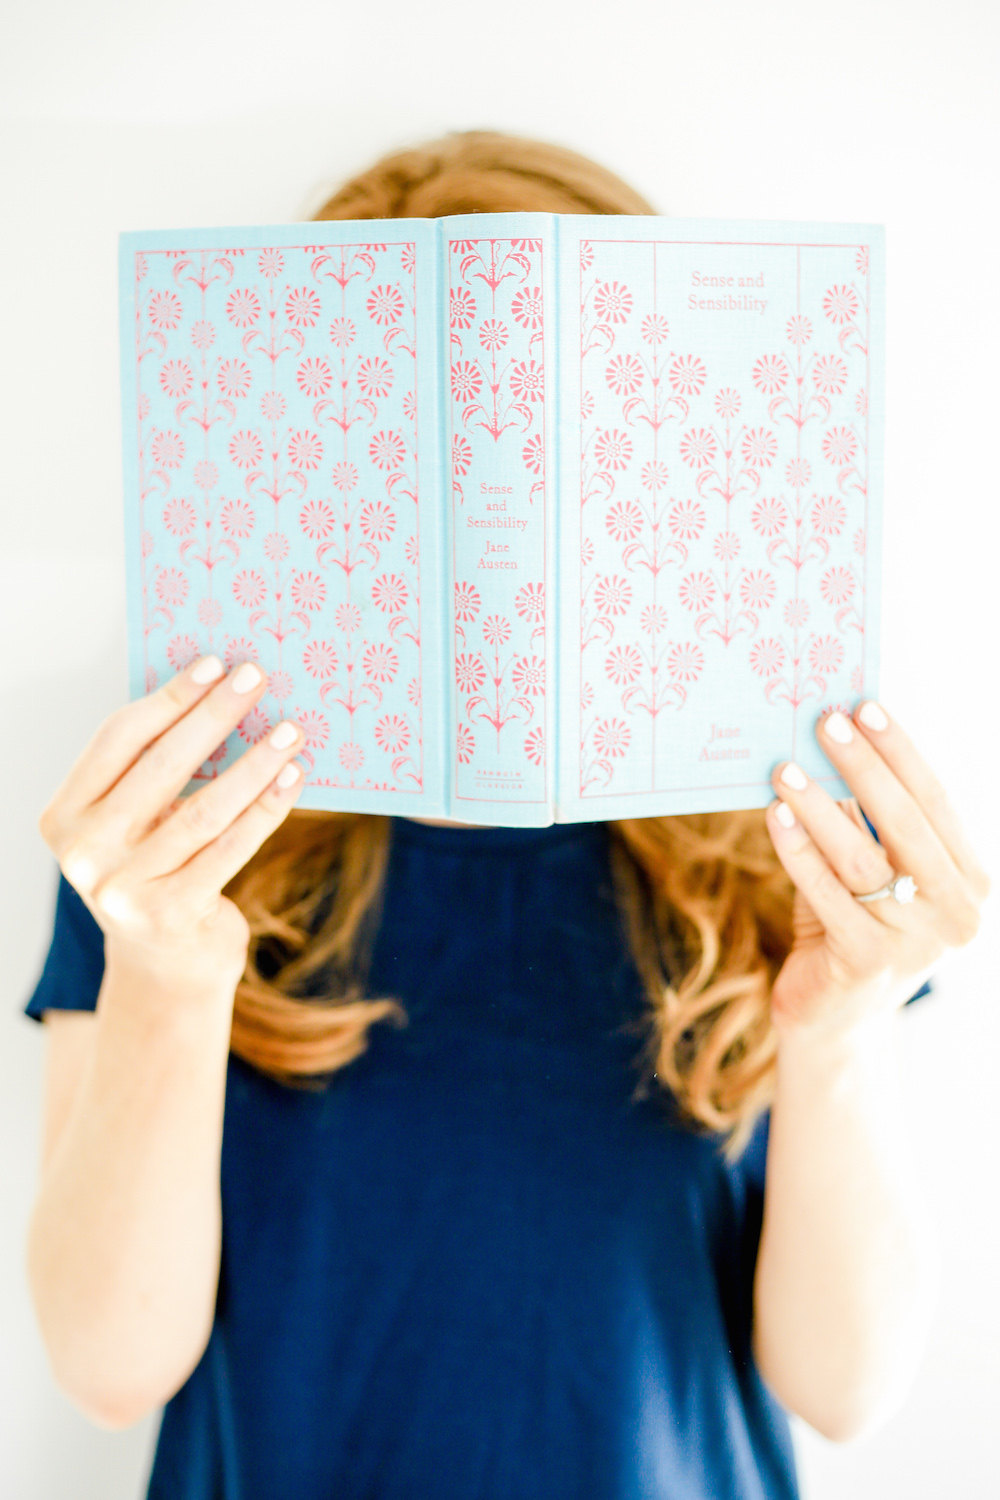 design darling jane austen sense and sensibility book recommendations-2